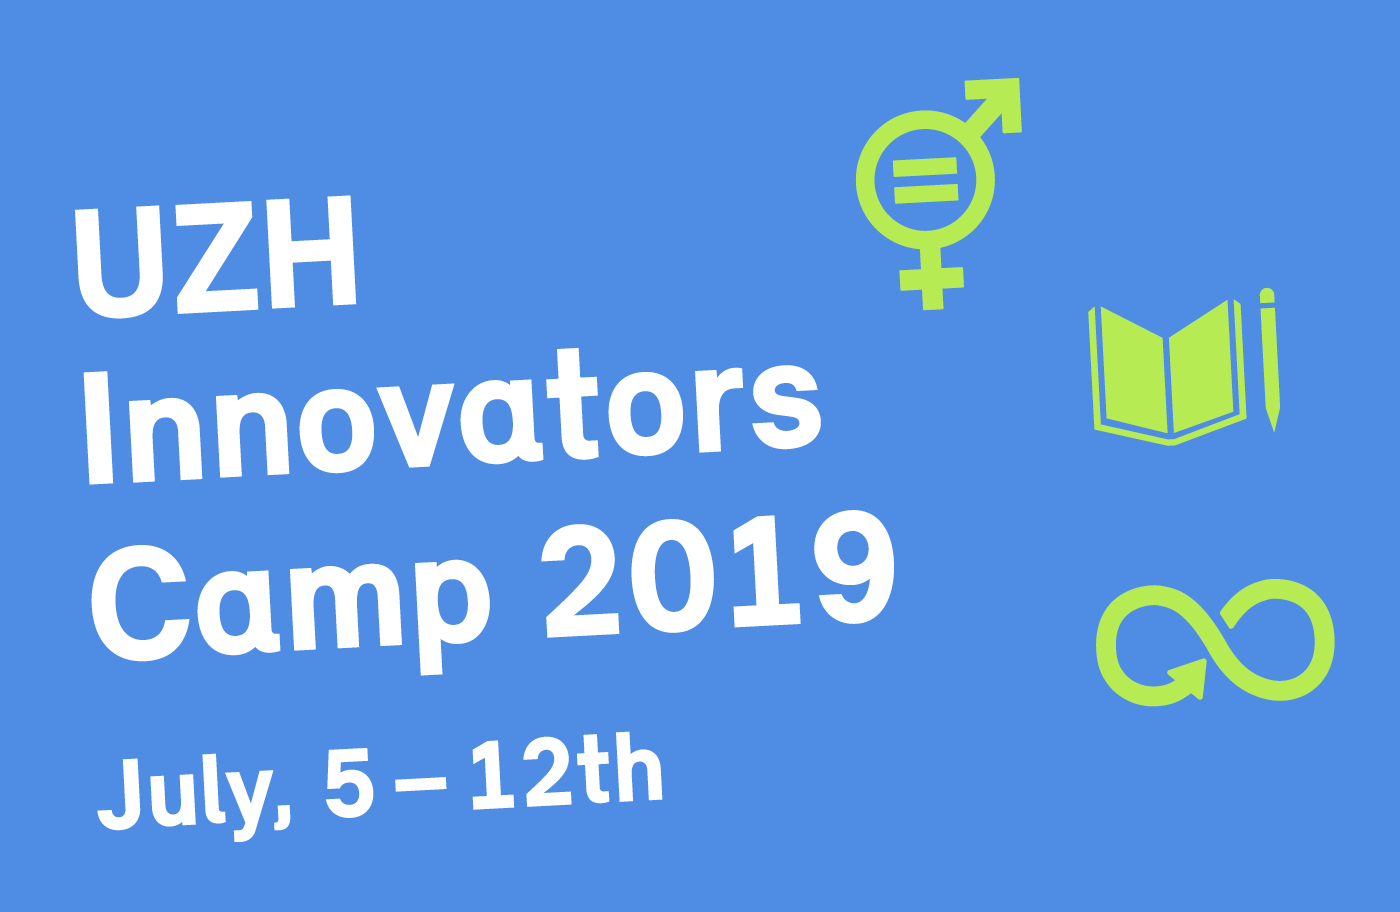 UZH Innovators Camp 2019